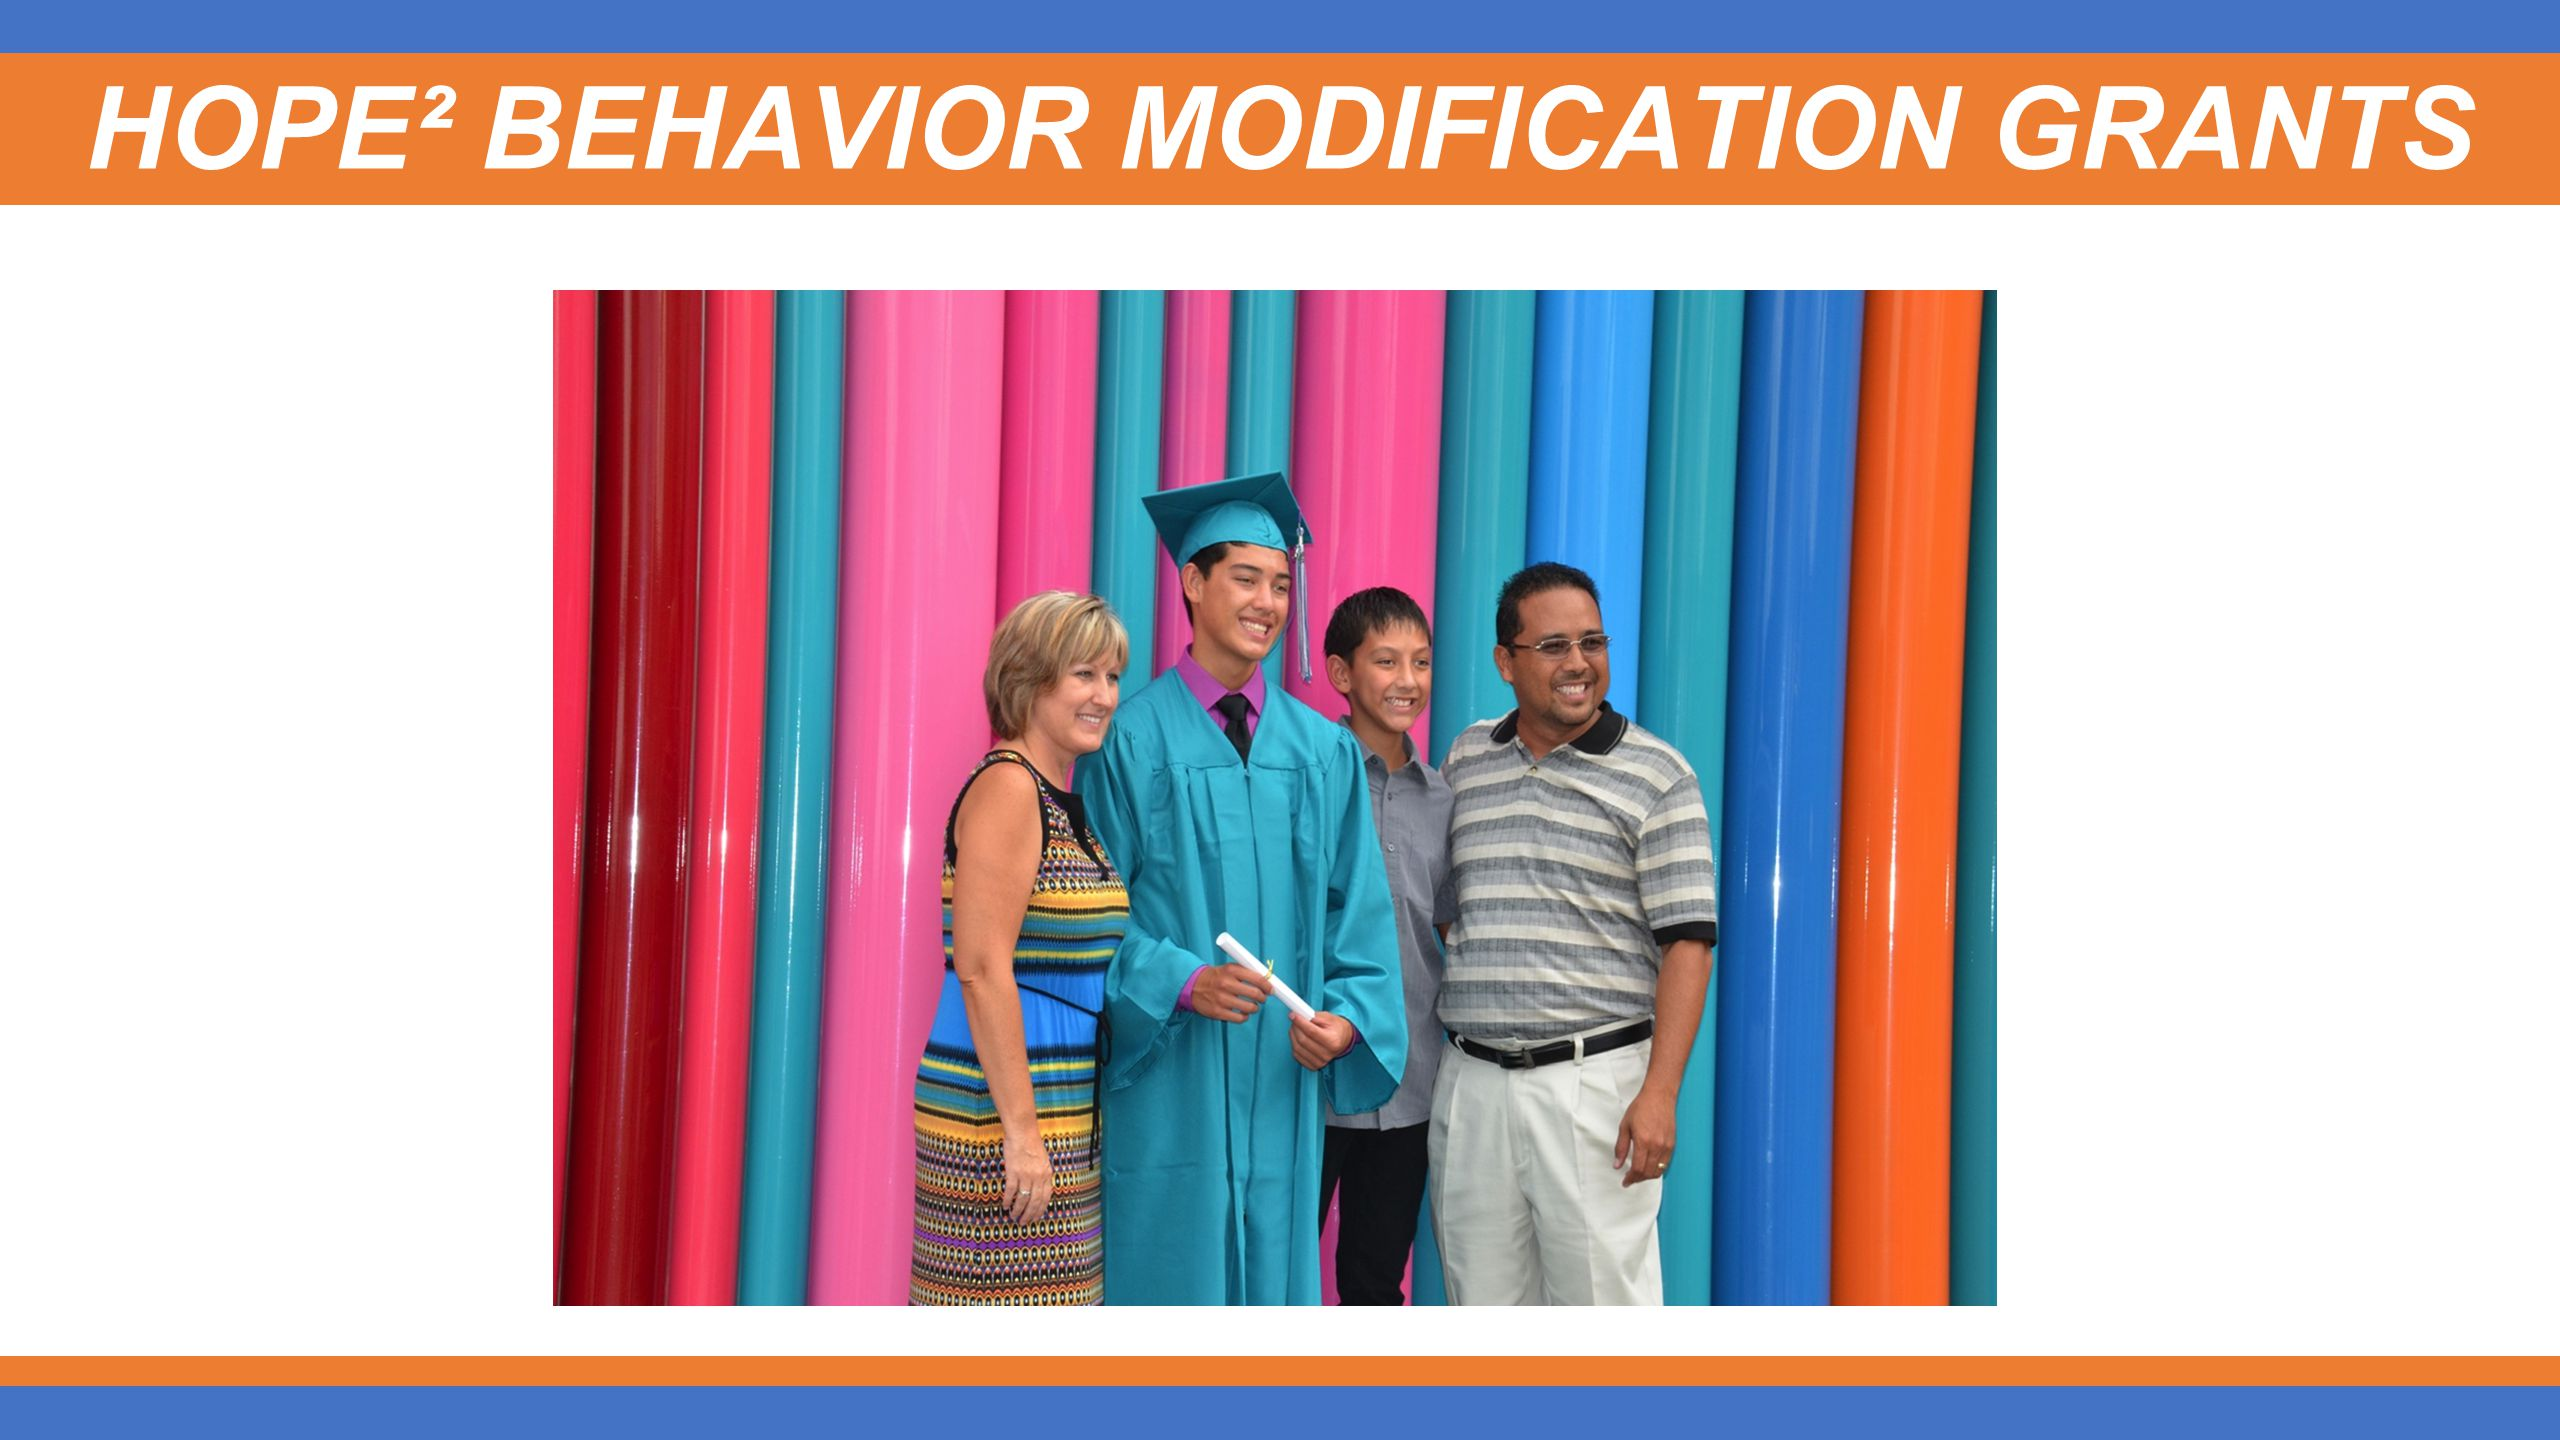 HOPE² BEHAVIOR MODIFICATION GRANTS